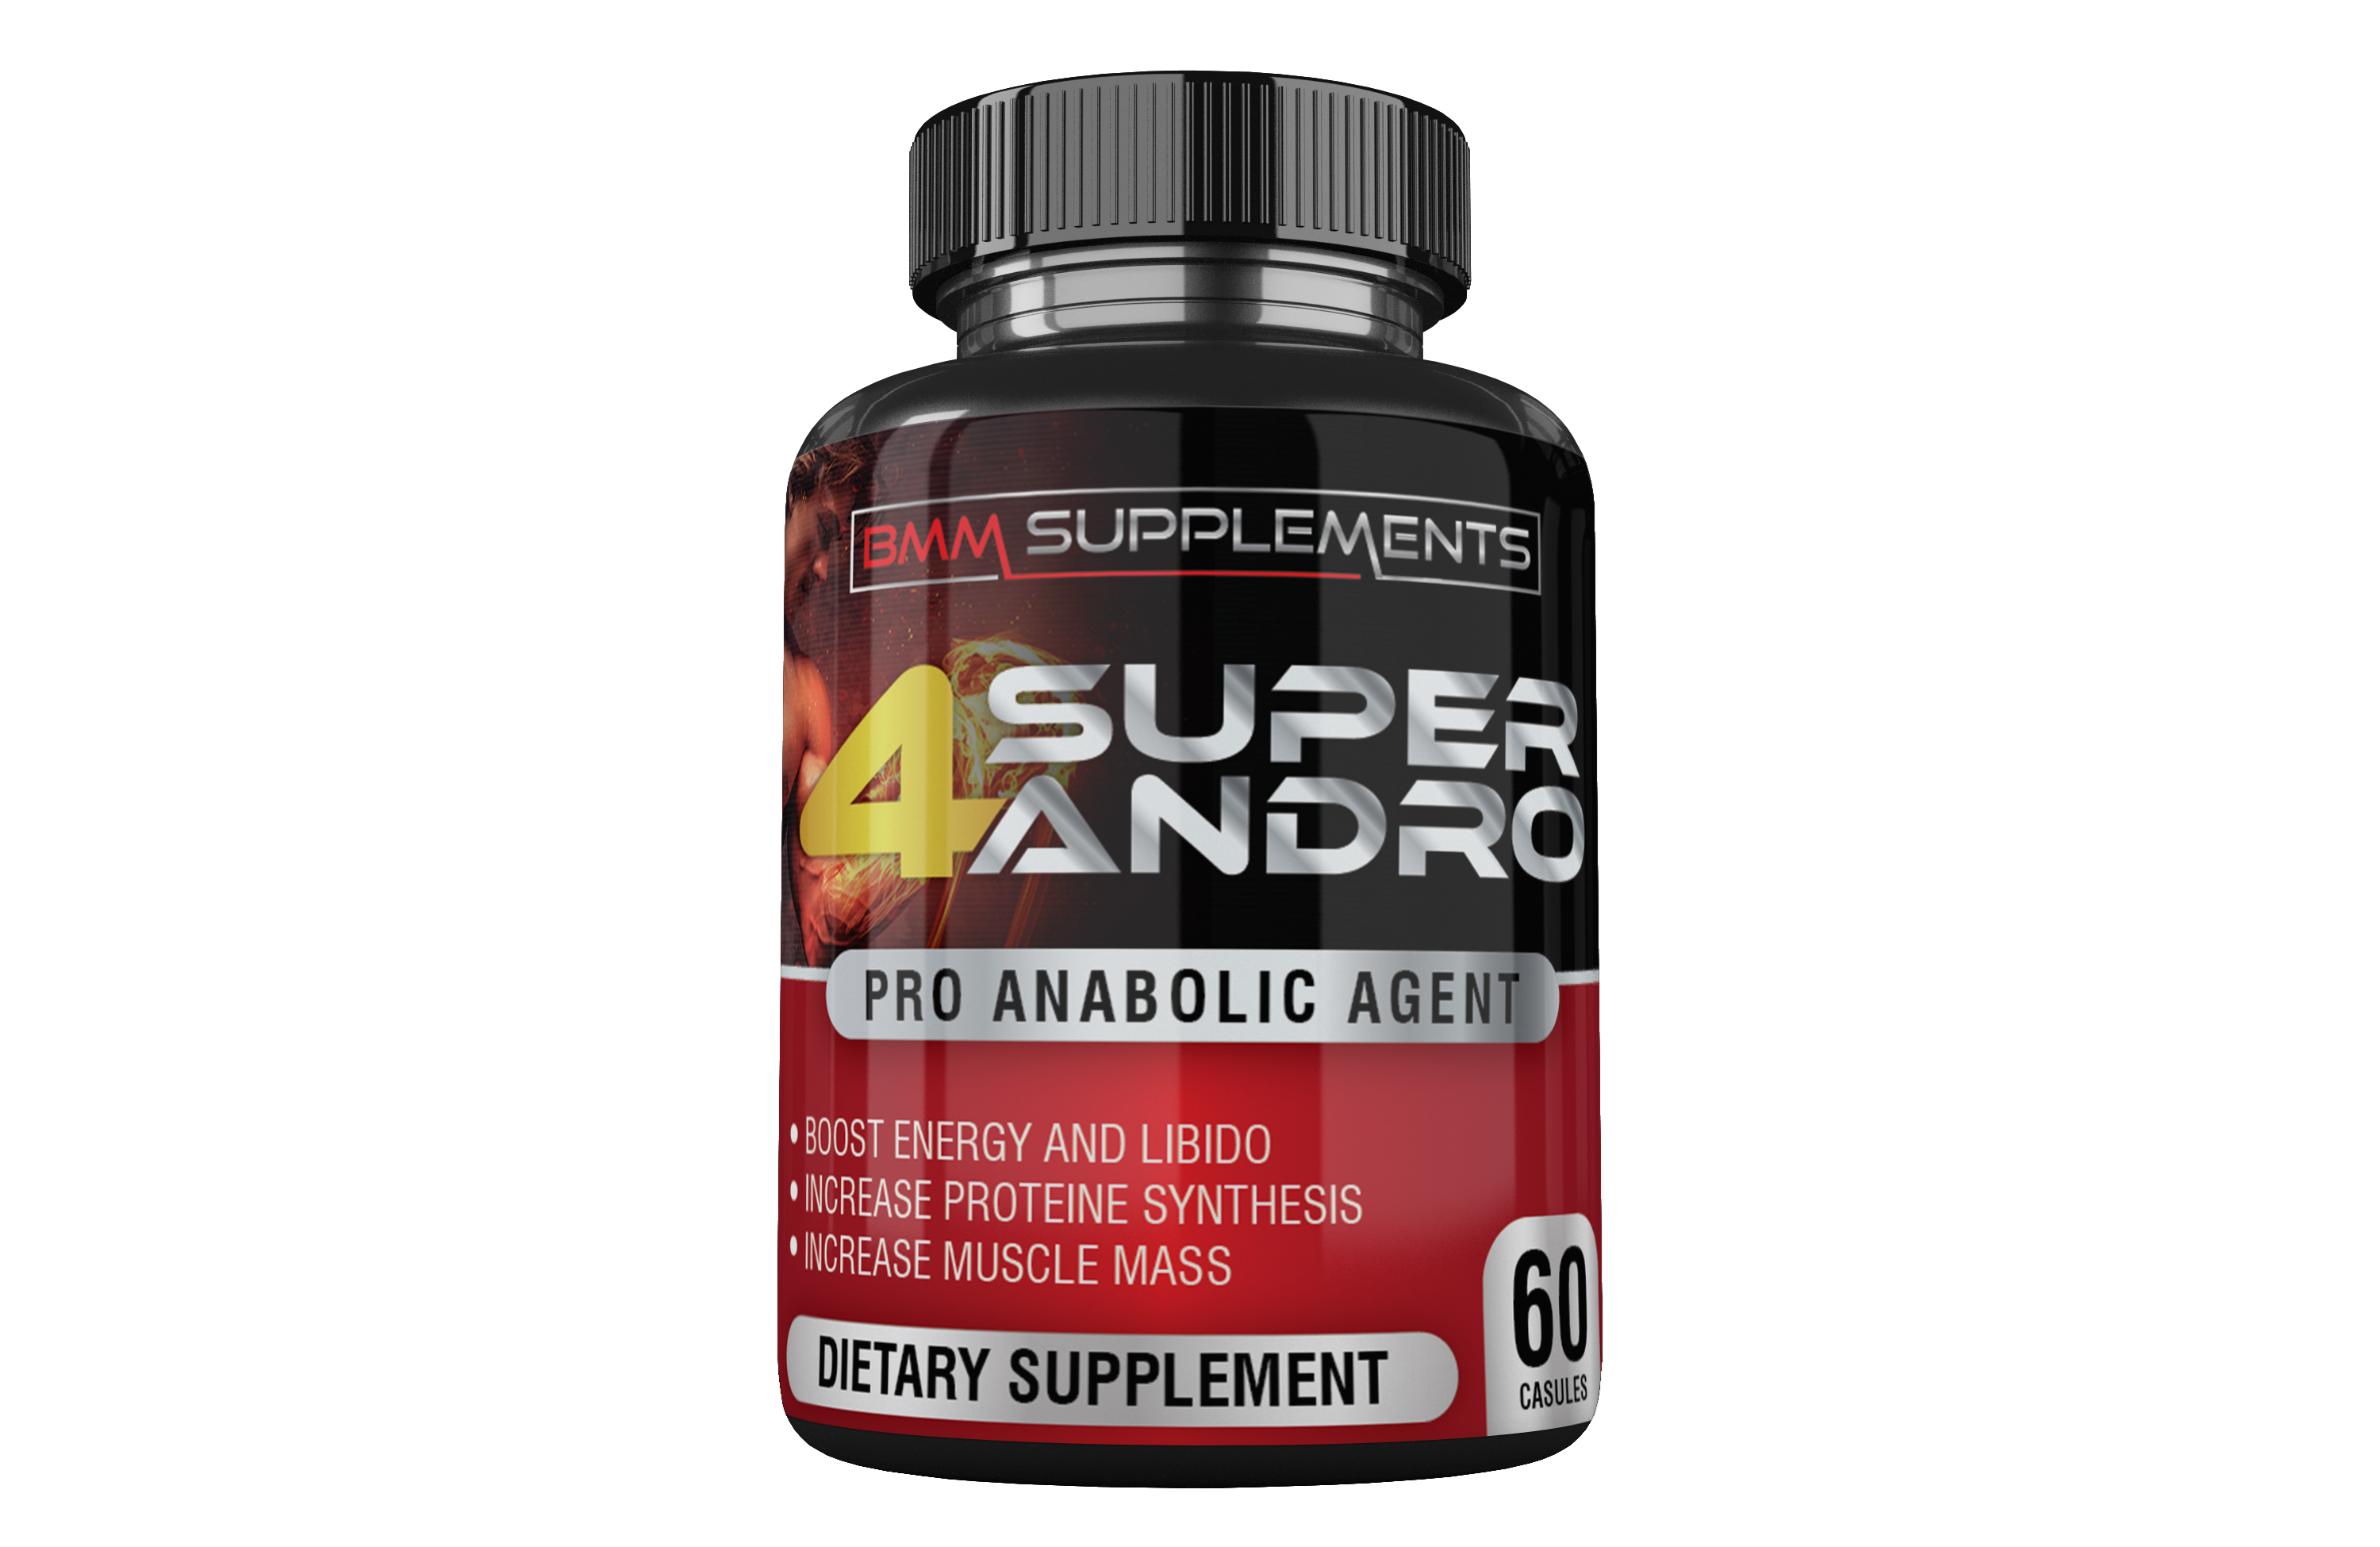 4 Super Andro - Pro anabolic Agent